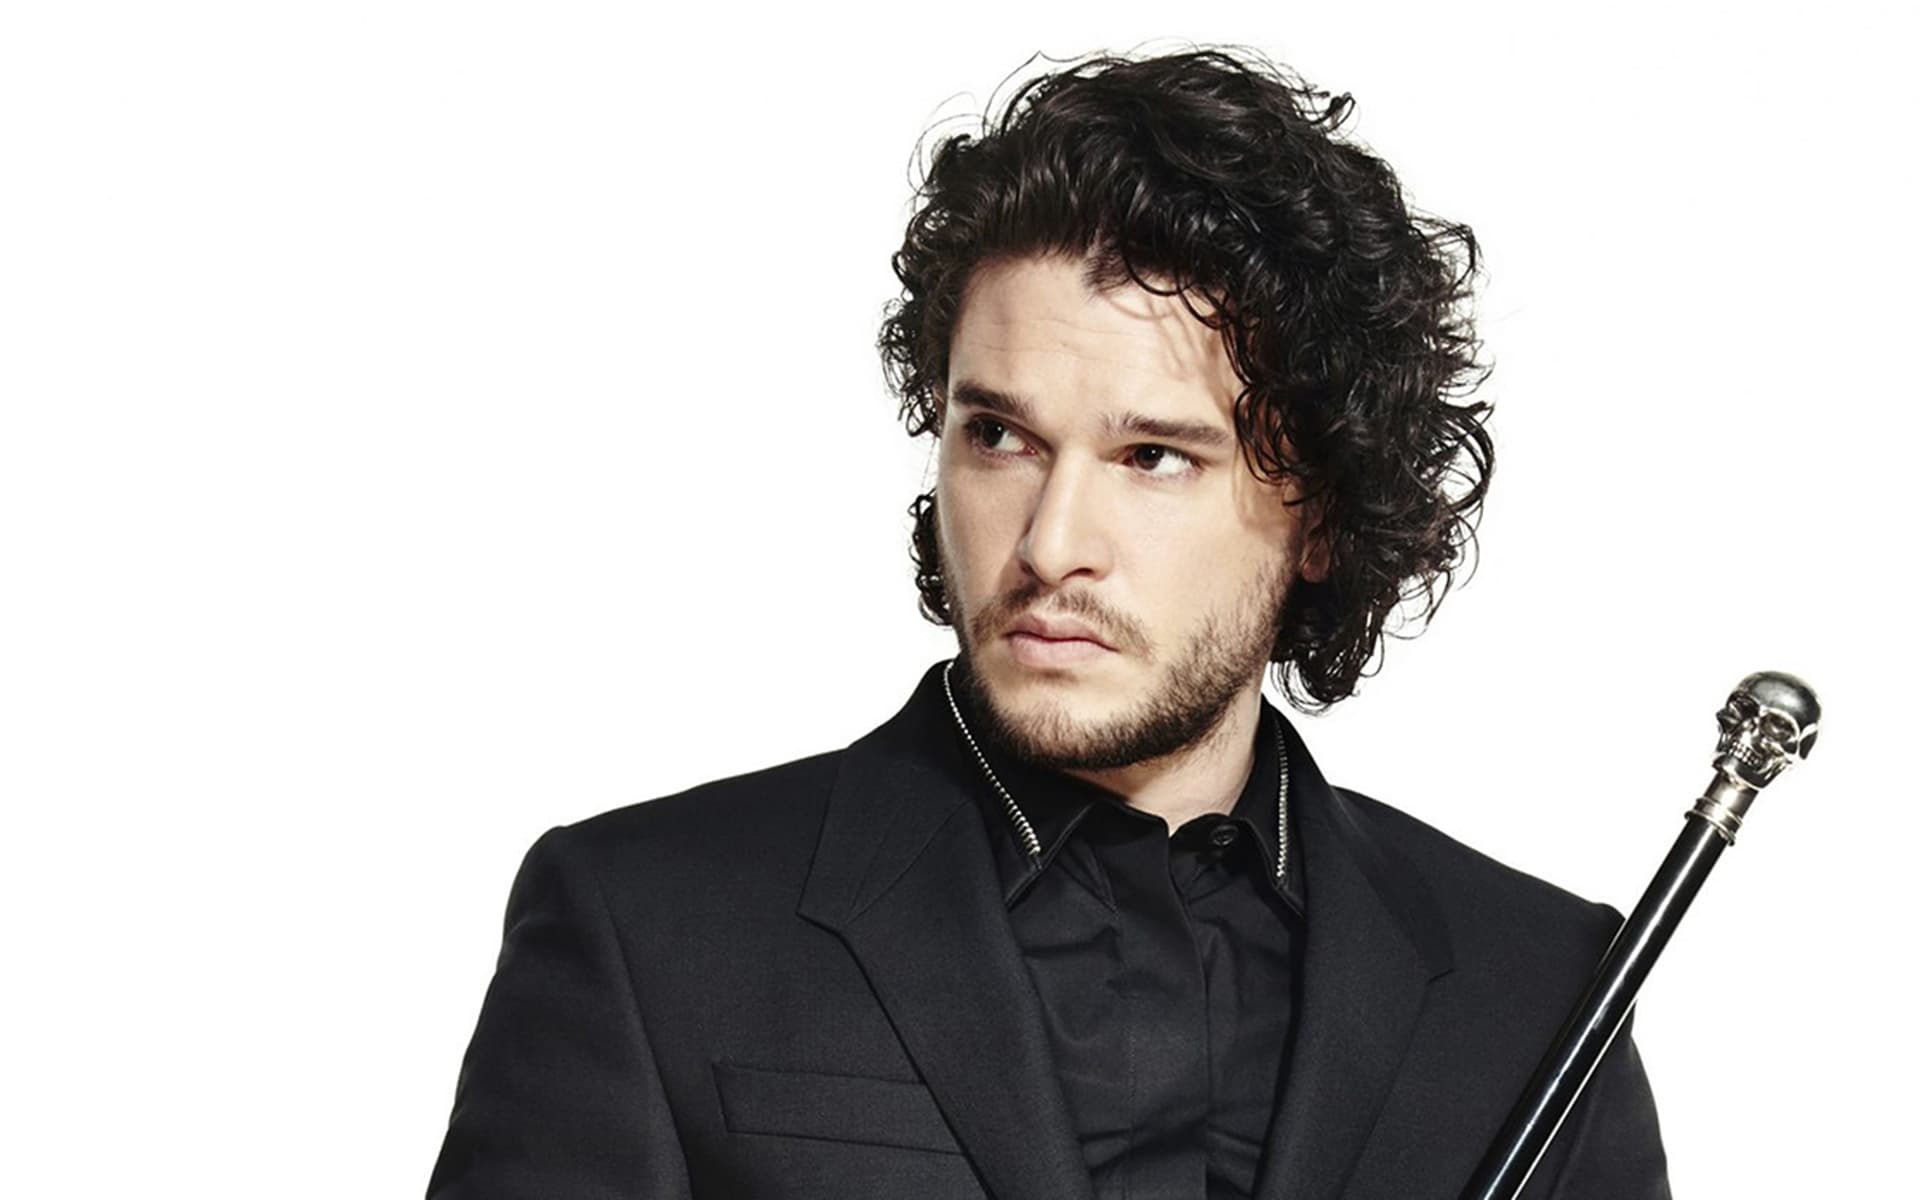 Kit Harington black suit HD images download